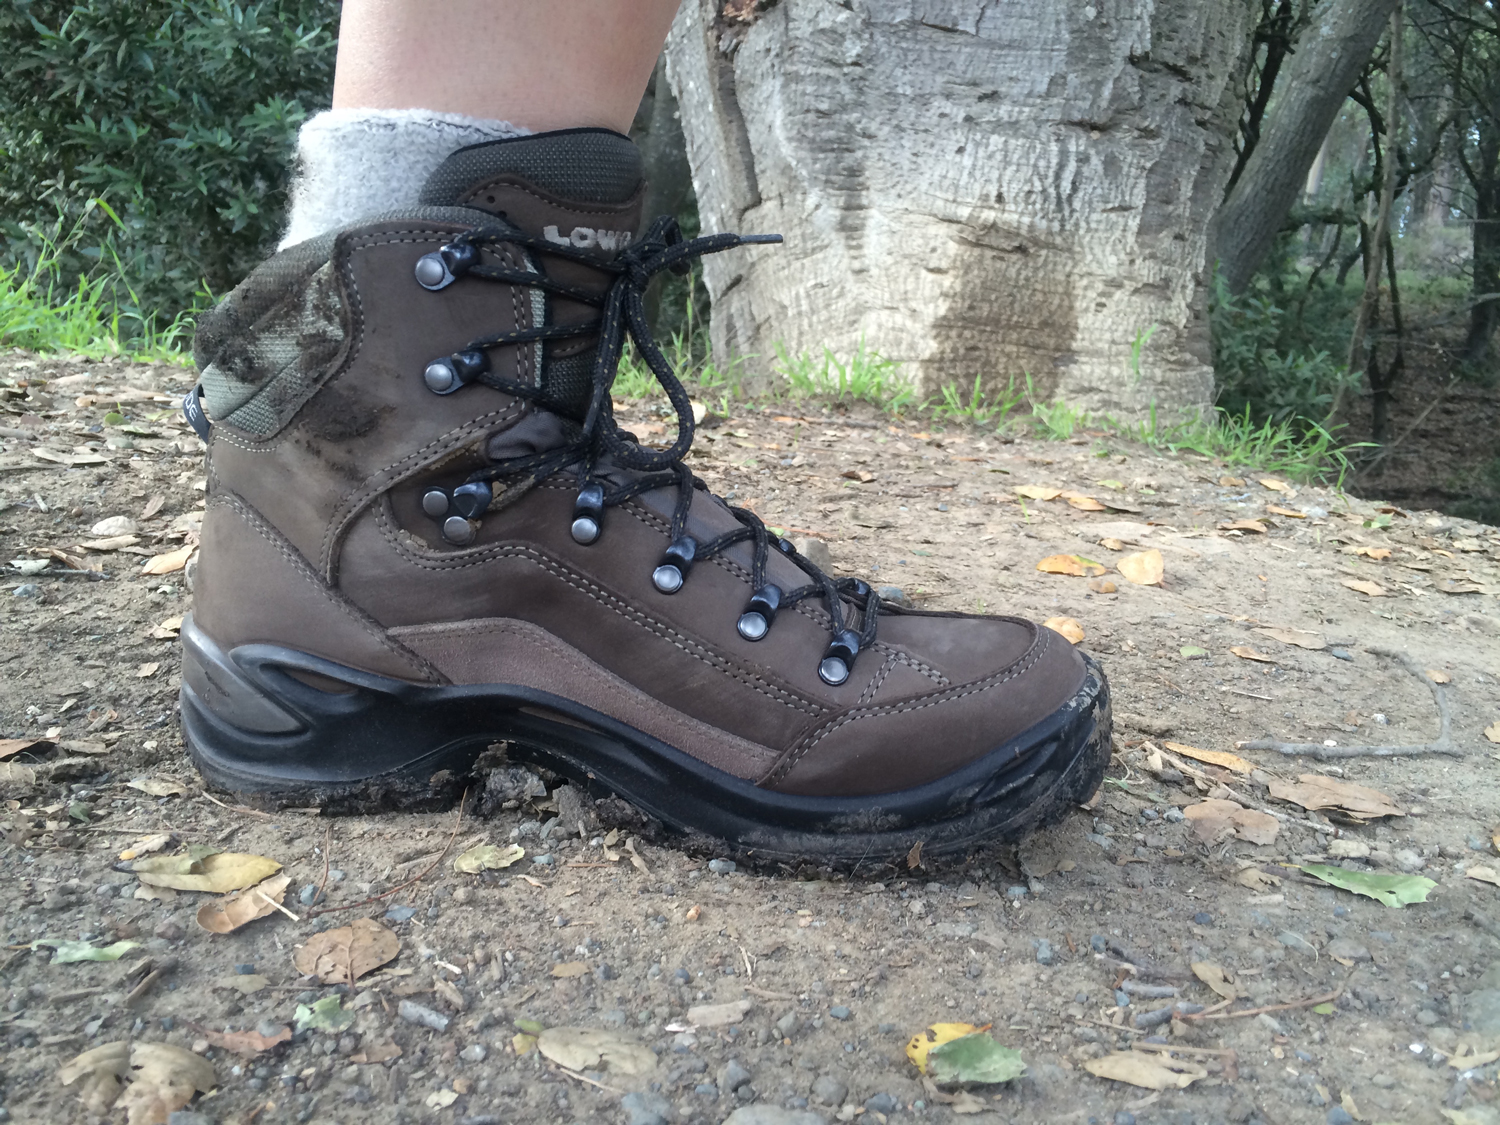 Lowa Renegade GTX Mid Hiking Boots - Women's